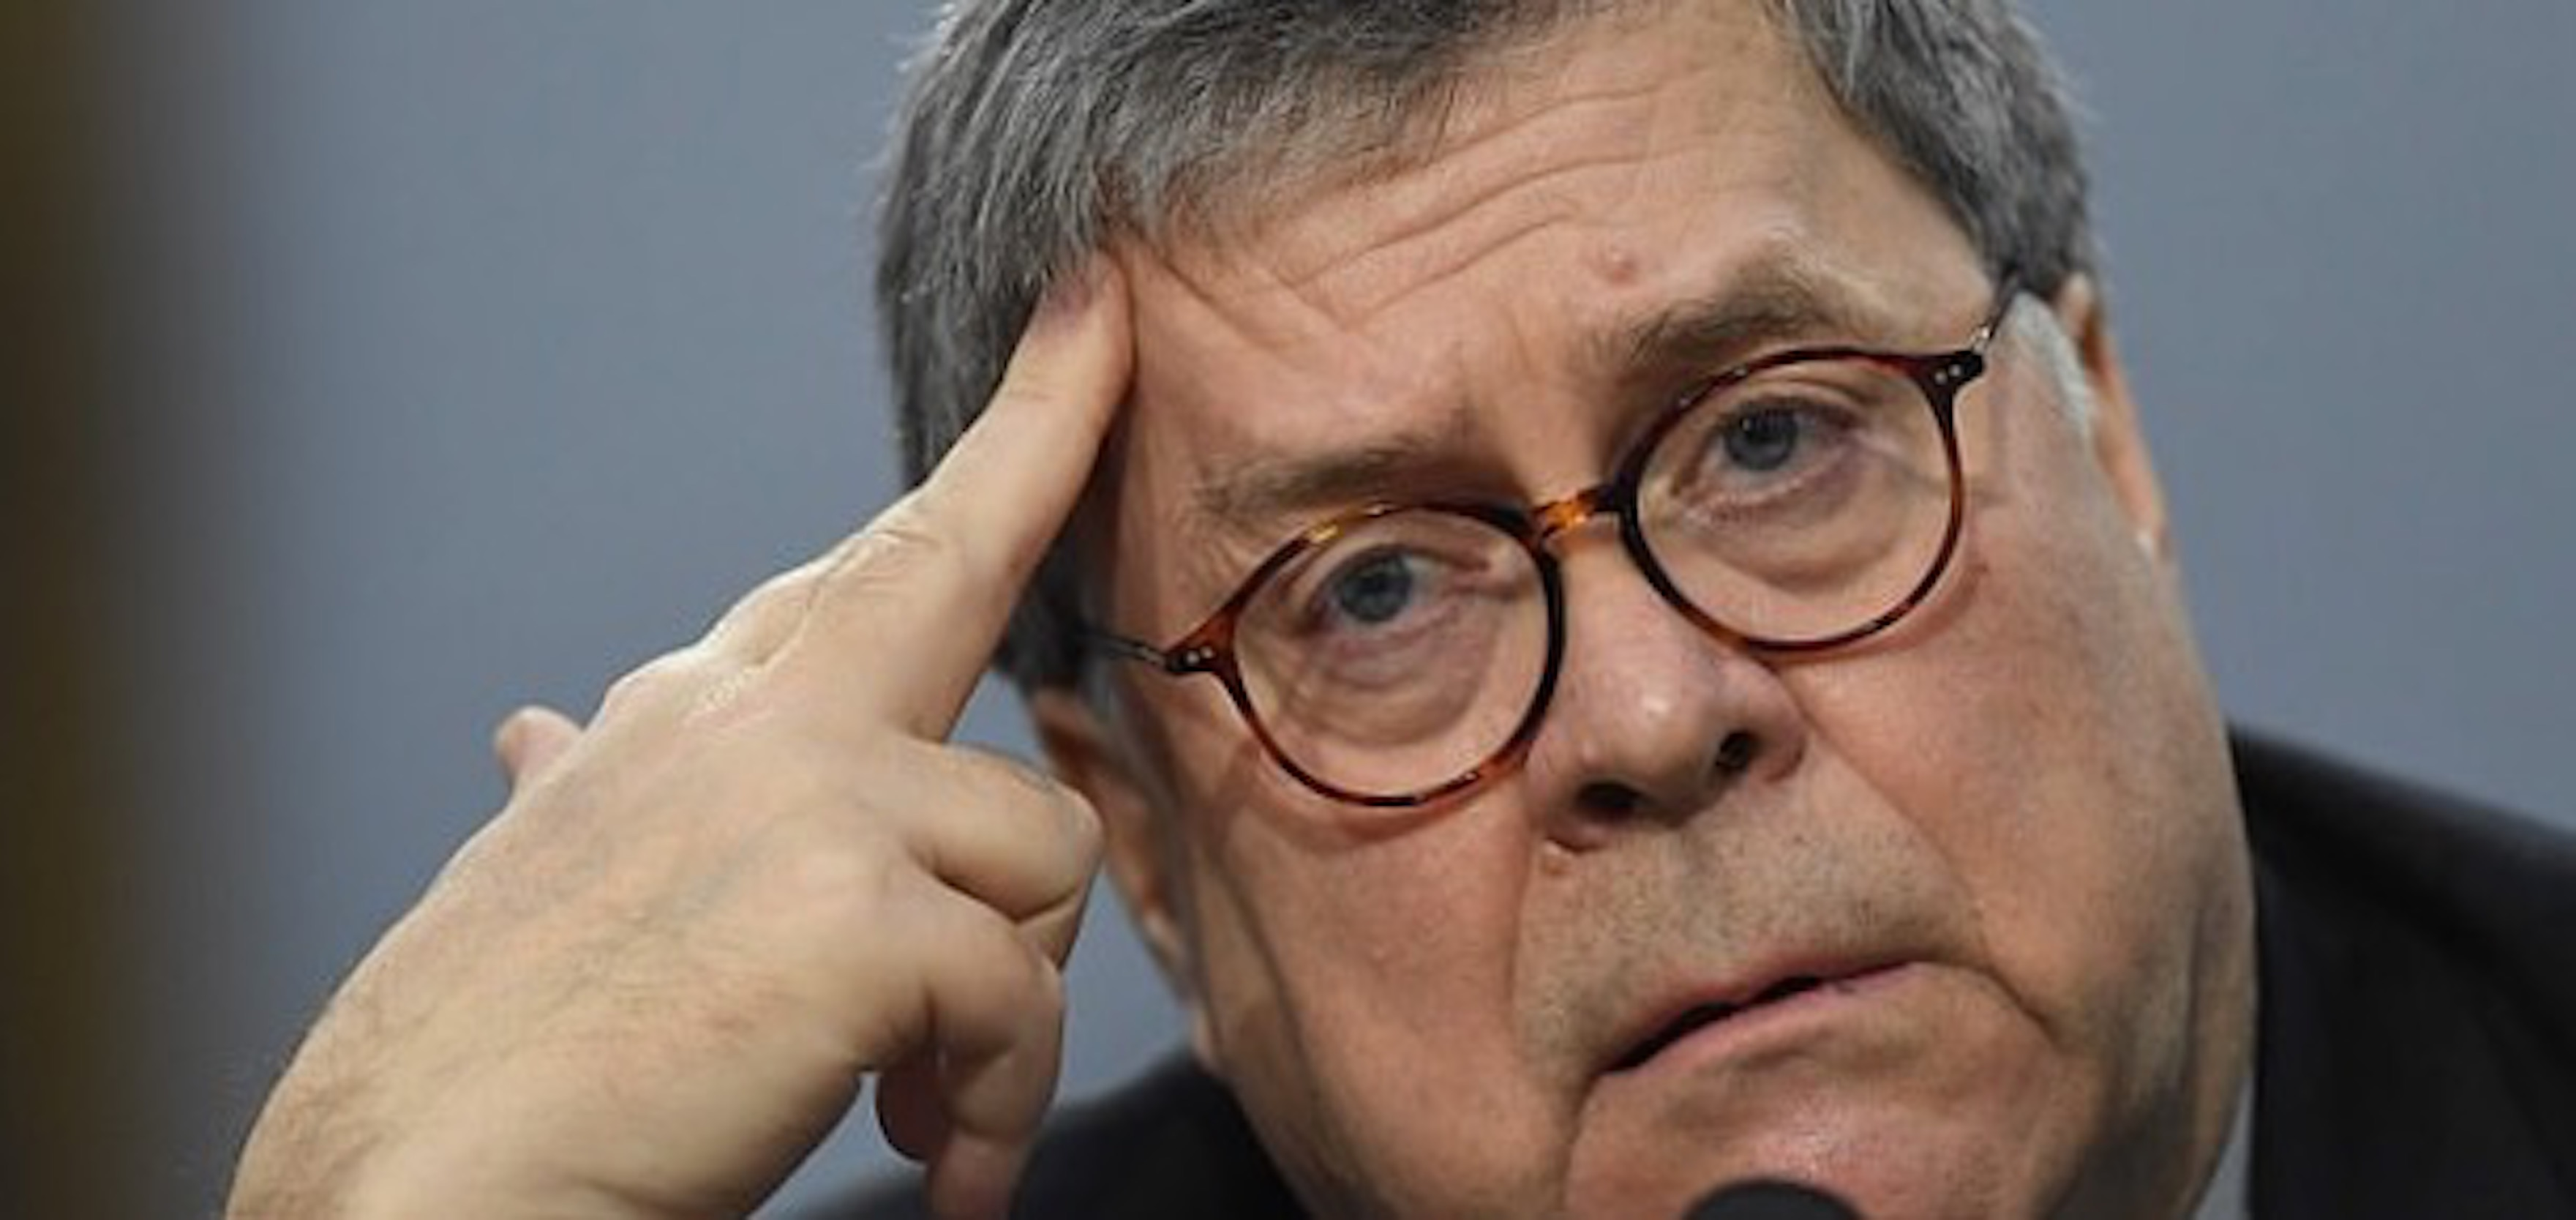 Lawless low Barr's depths of depravity